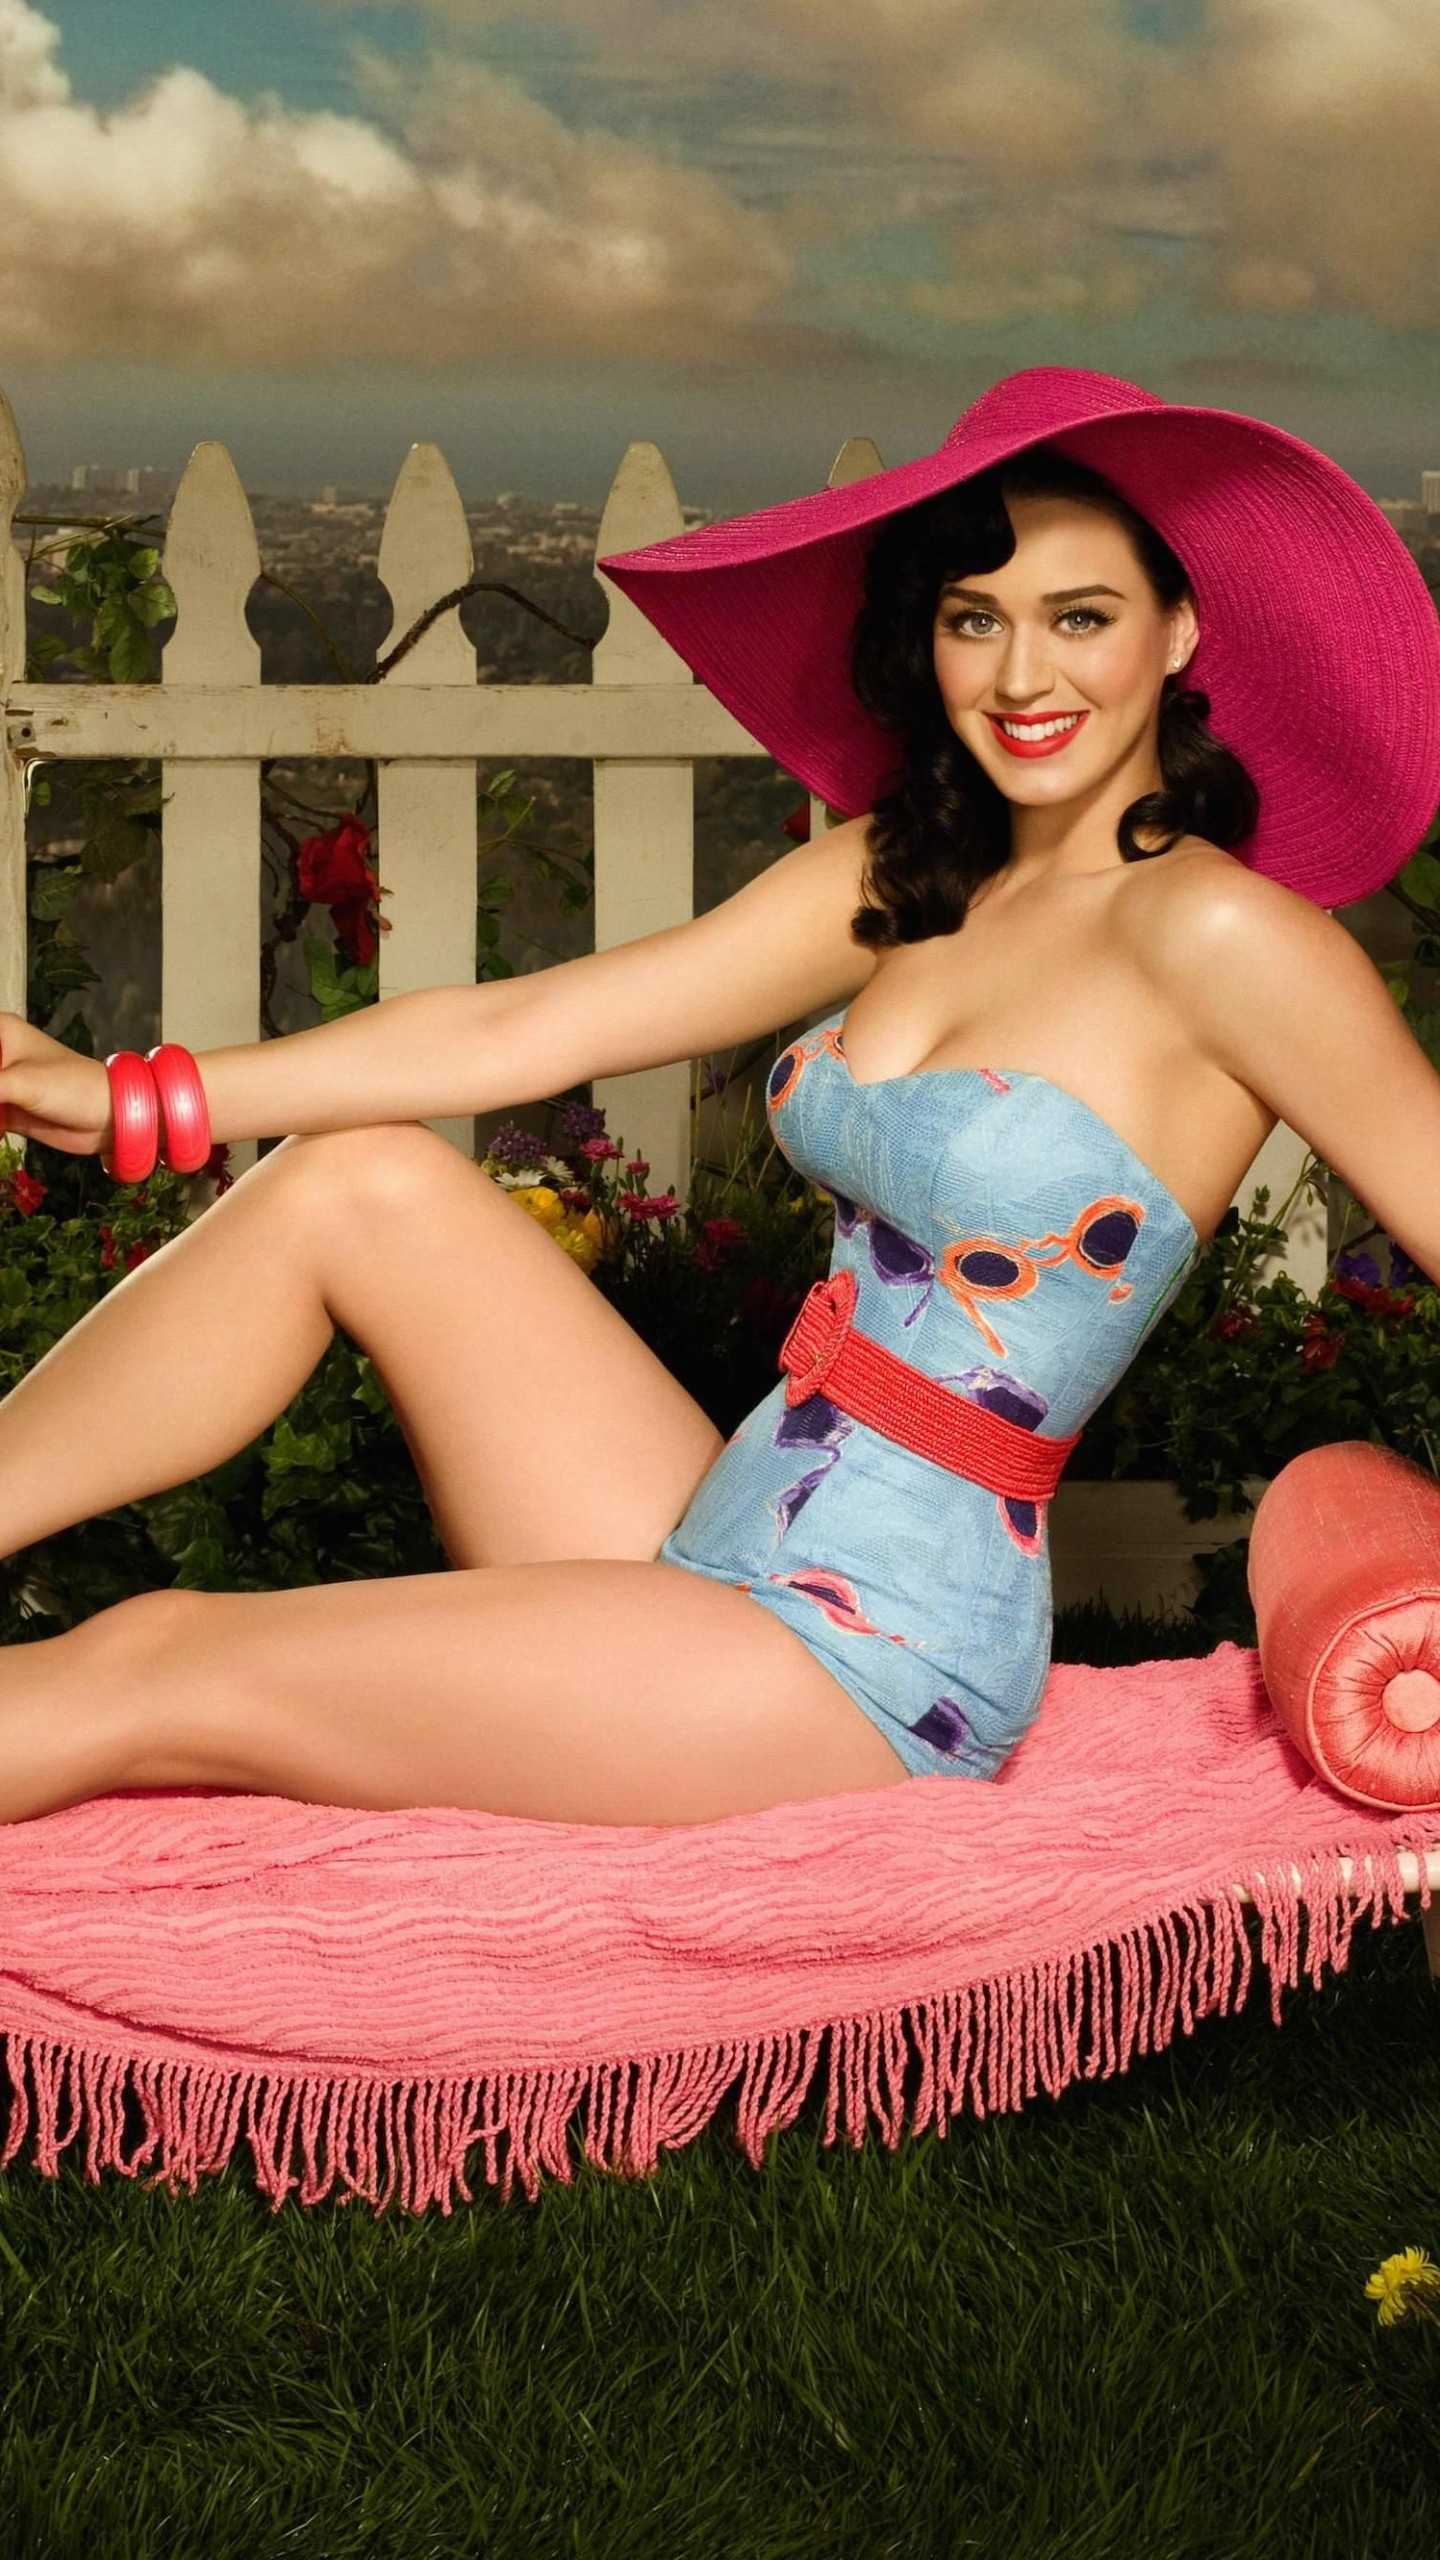 Katy Perry Lying On Chair Body Figure Wallpaper for Google Nexus 6P